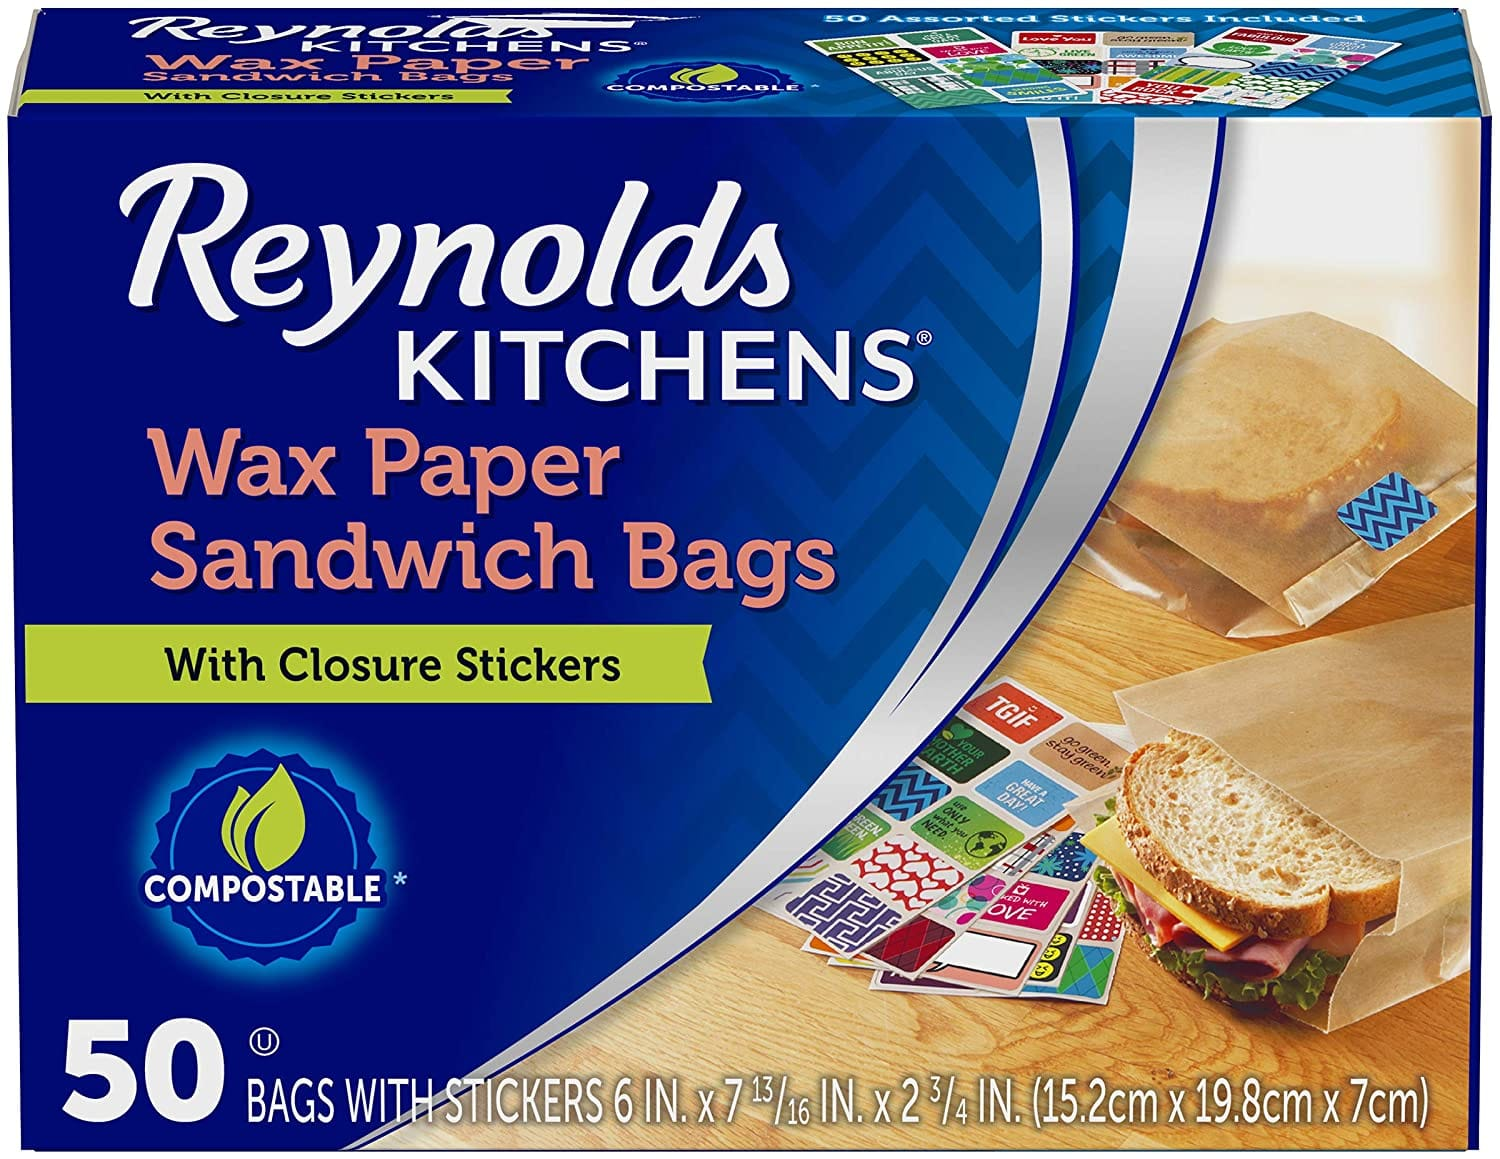 50-Ct Reynolds Kitchen Wax Paper Sandwich Bags $2.59 w/ S&S + Free Shipping w/ Prime or on $25+